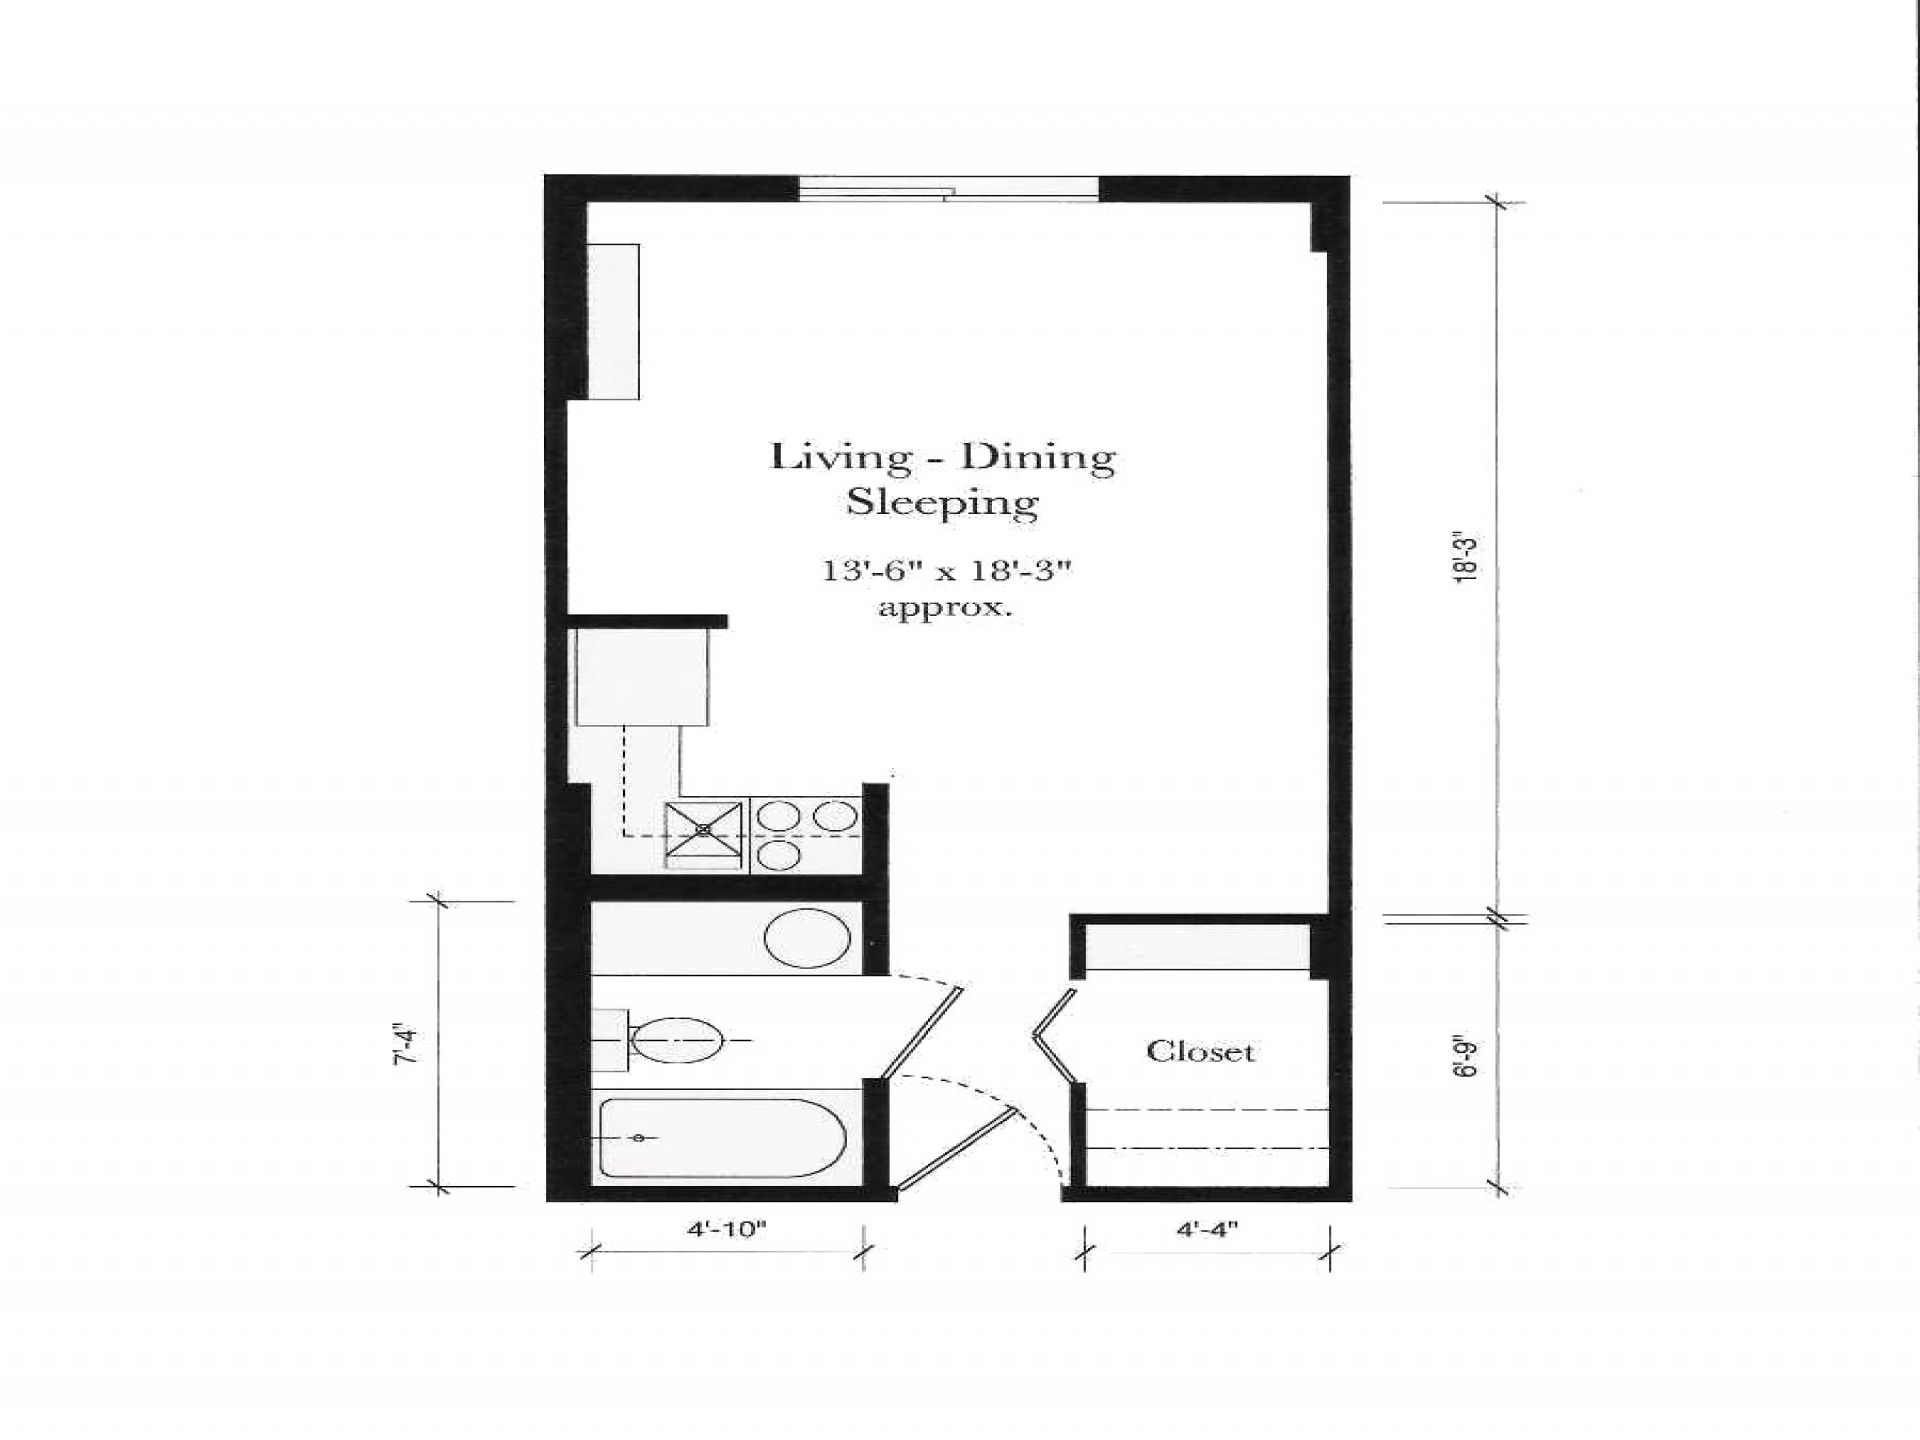 Apartment Studio Floor Plan Simple Floor Design Studio ...